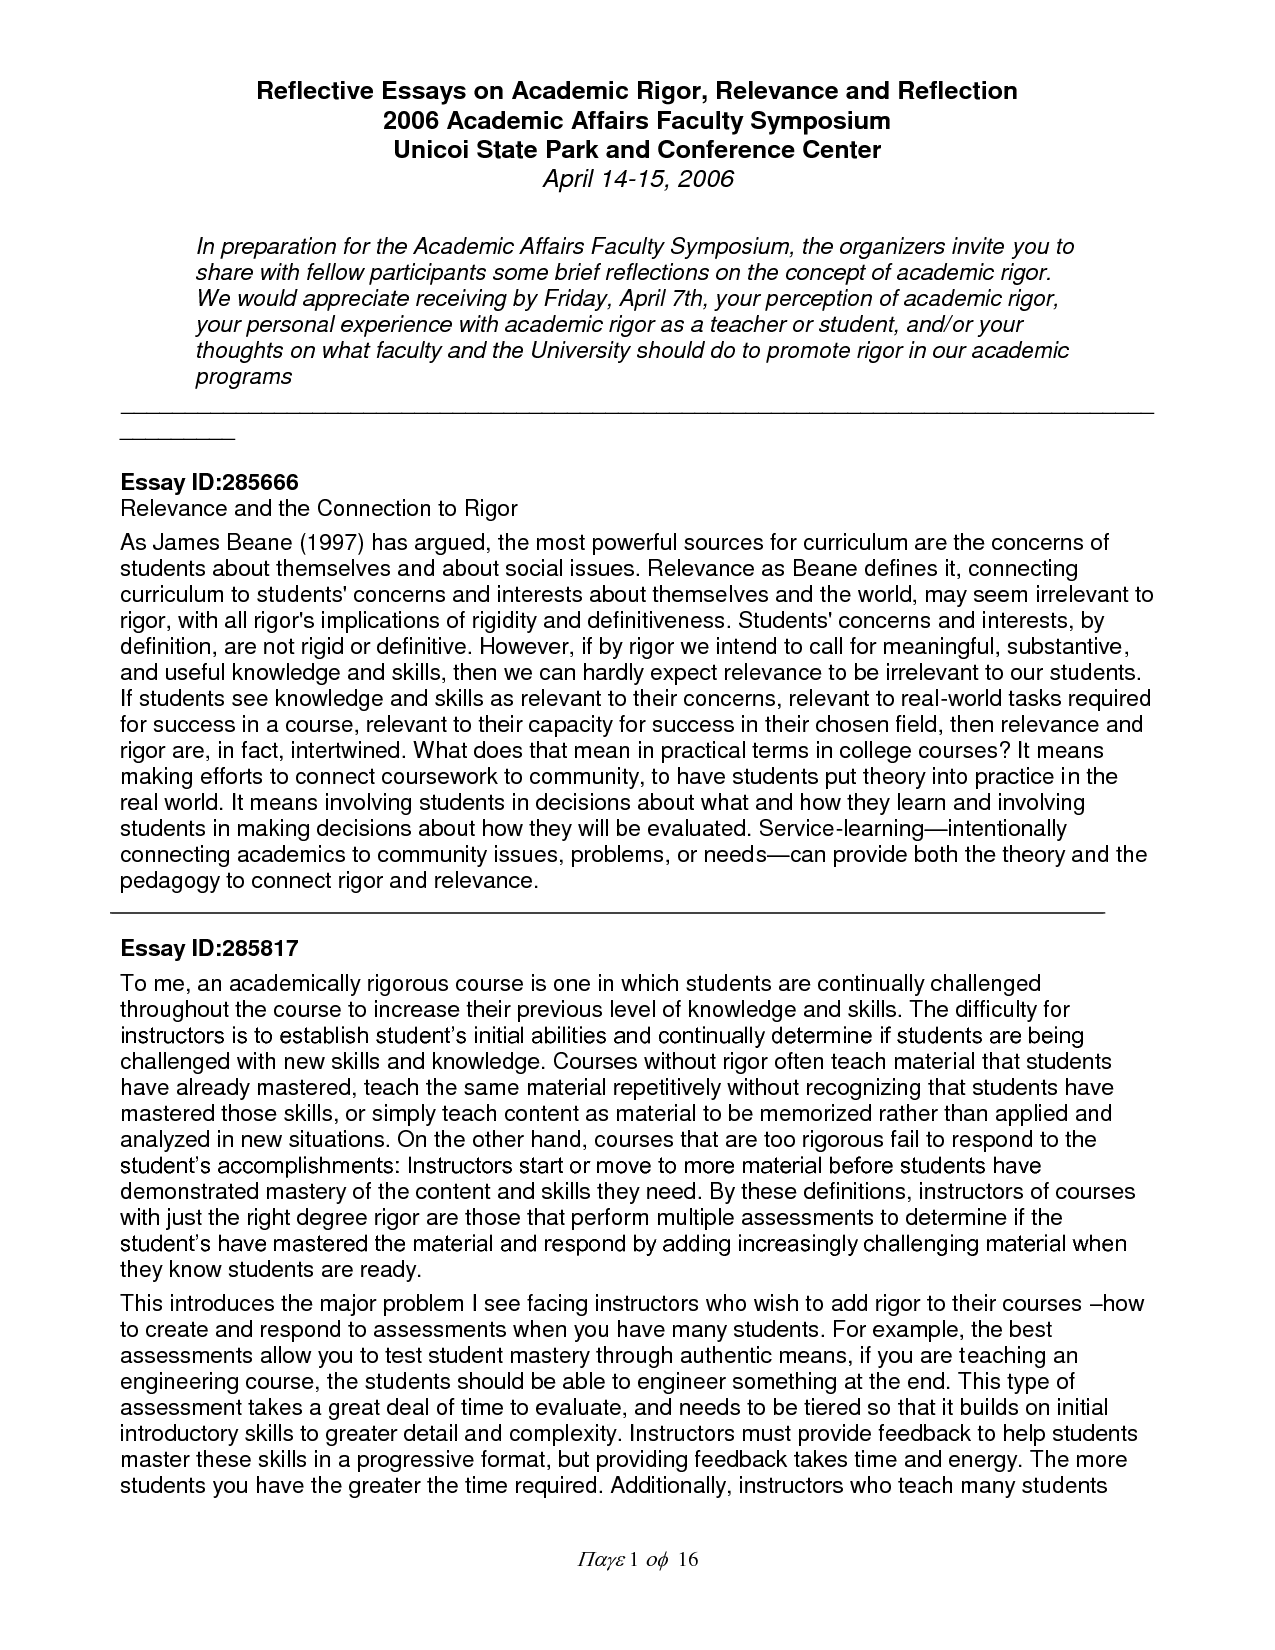 007 Descriptive Essay About Love Ixora Philippinensis Example Of Family Essays For High School Students Pics Admi Unique Examples Personal Statement Sample 5 Paragraph Argumentative Tagalog Full